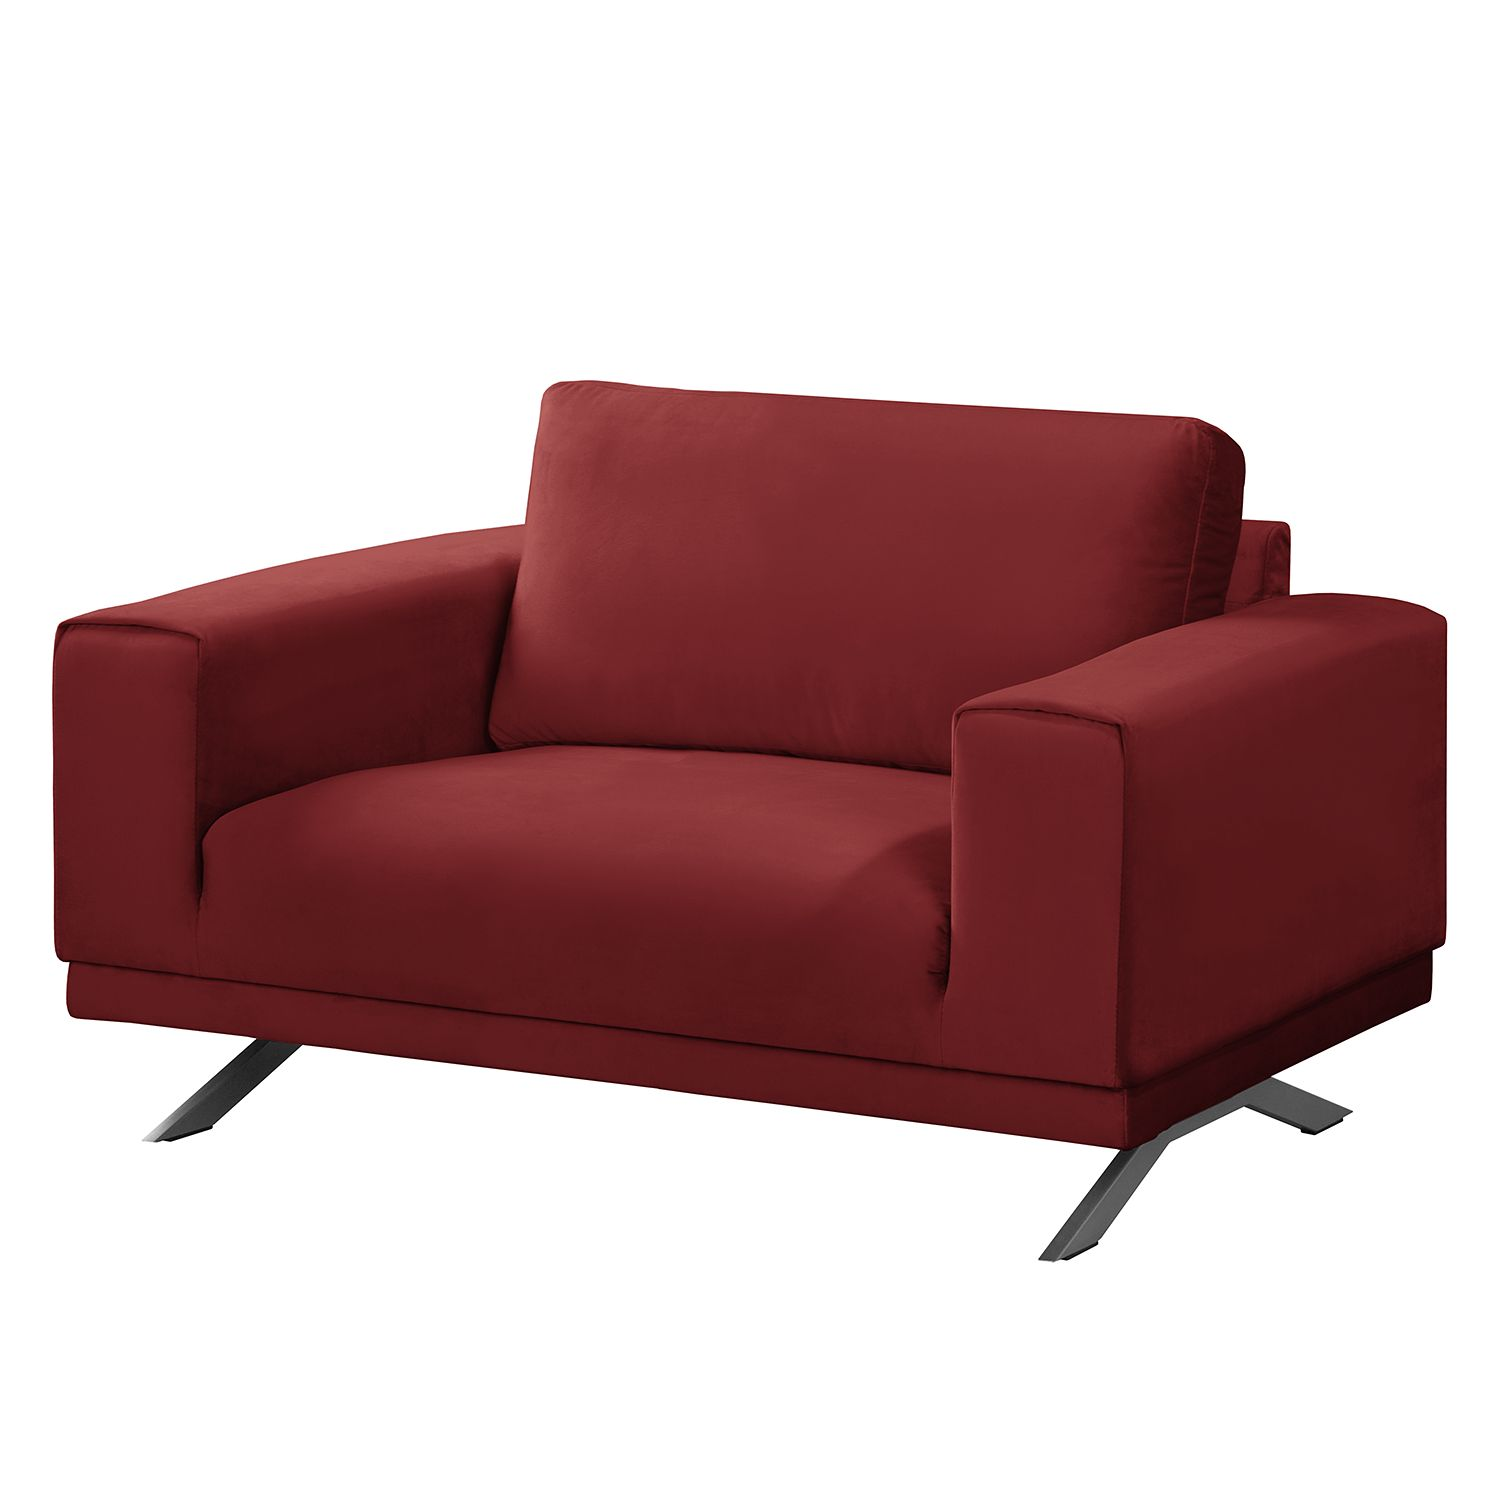 Fauteuil lorcy velours rouge fredriks for Samt sessel rot